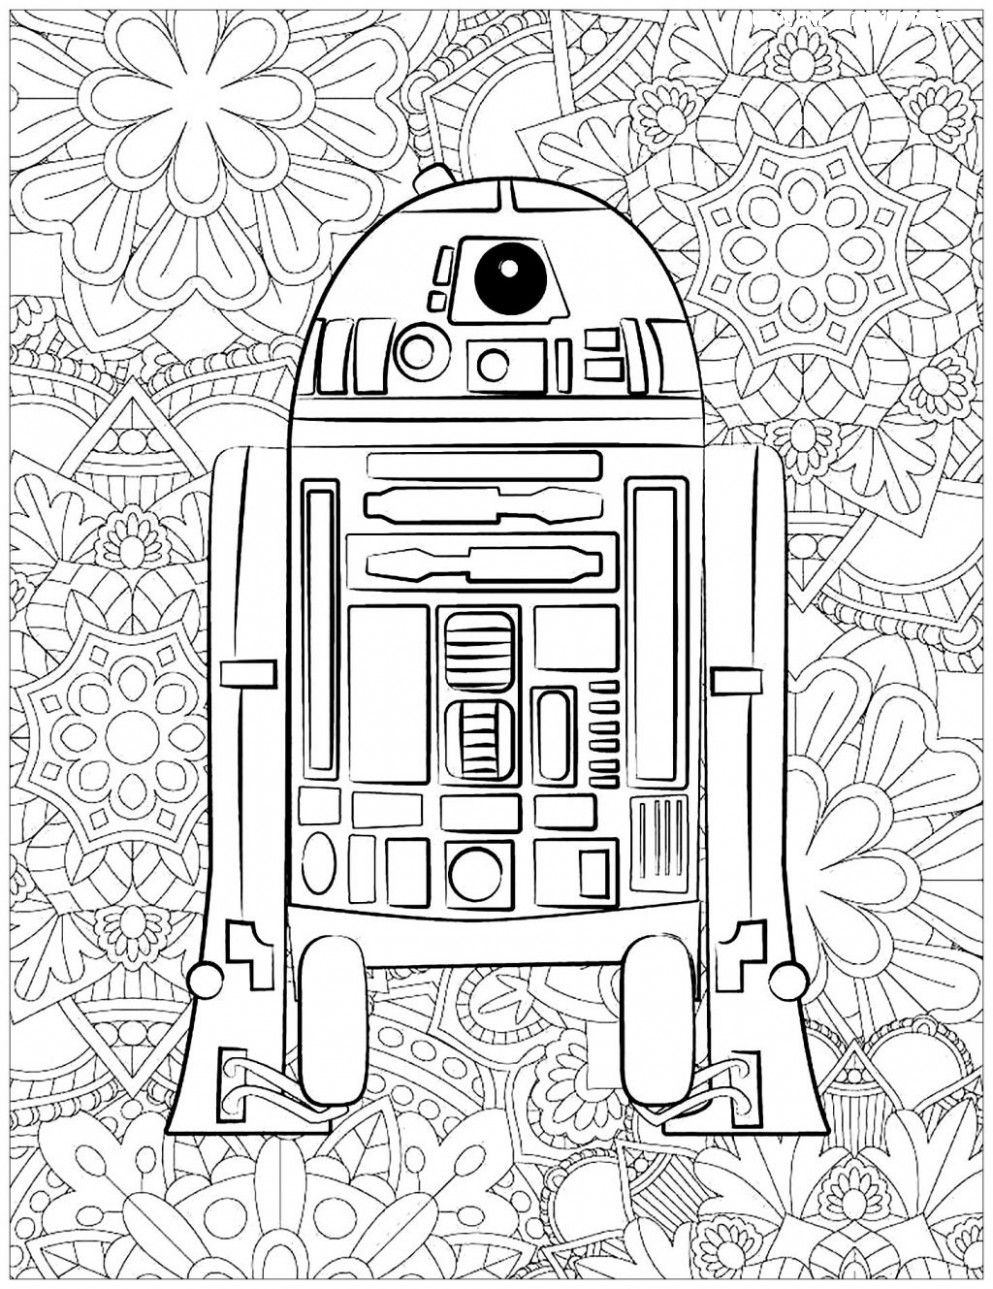 Ten Things Nobody Told You About Rogue One Coloring Pages Rogue One Coloring Pages Star Wars Coloring Book Star Wars Colors Free Disney Coloring Pages